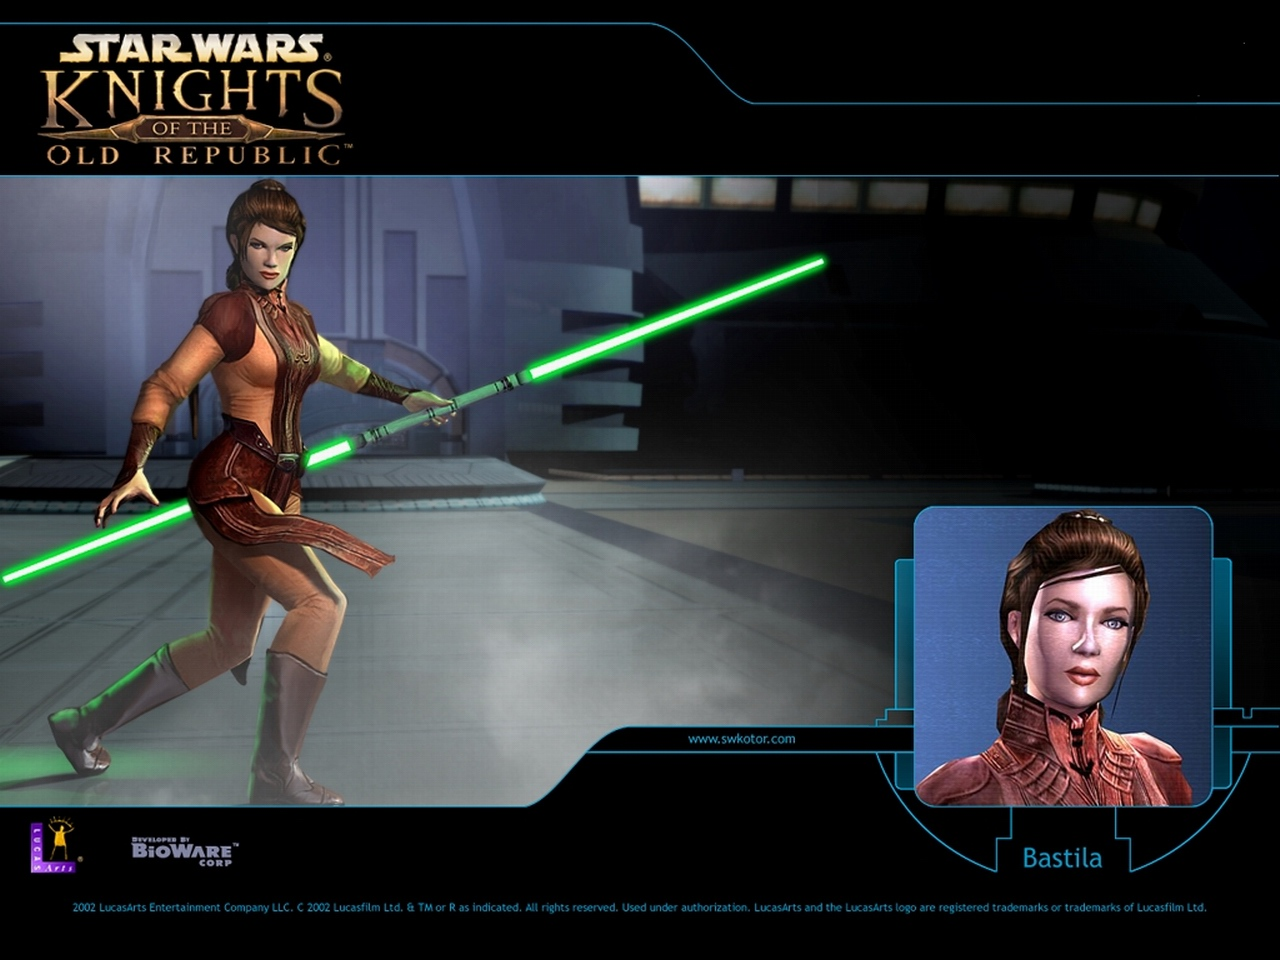 Bastila shan masturbating mission mod fucks movie